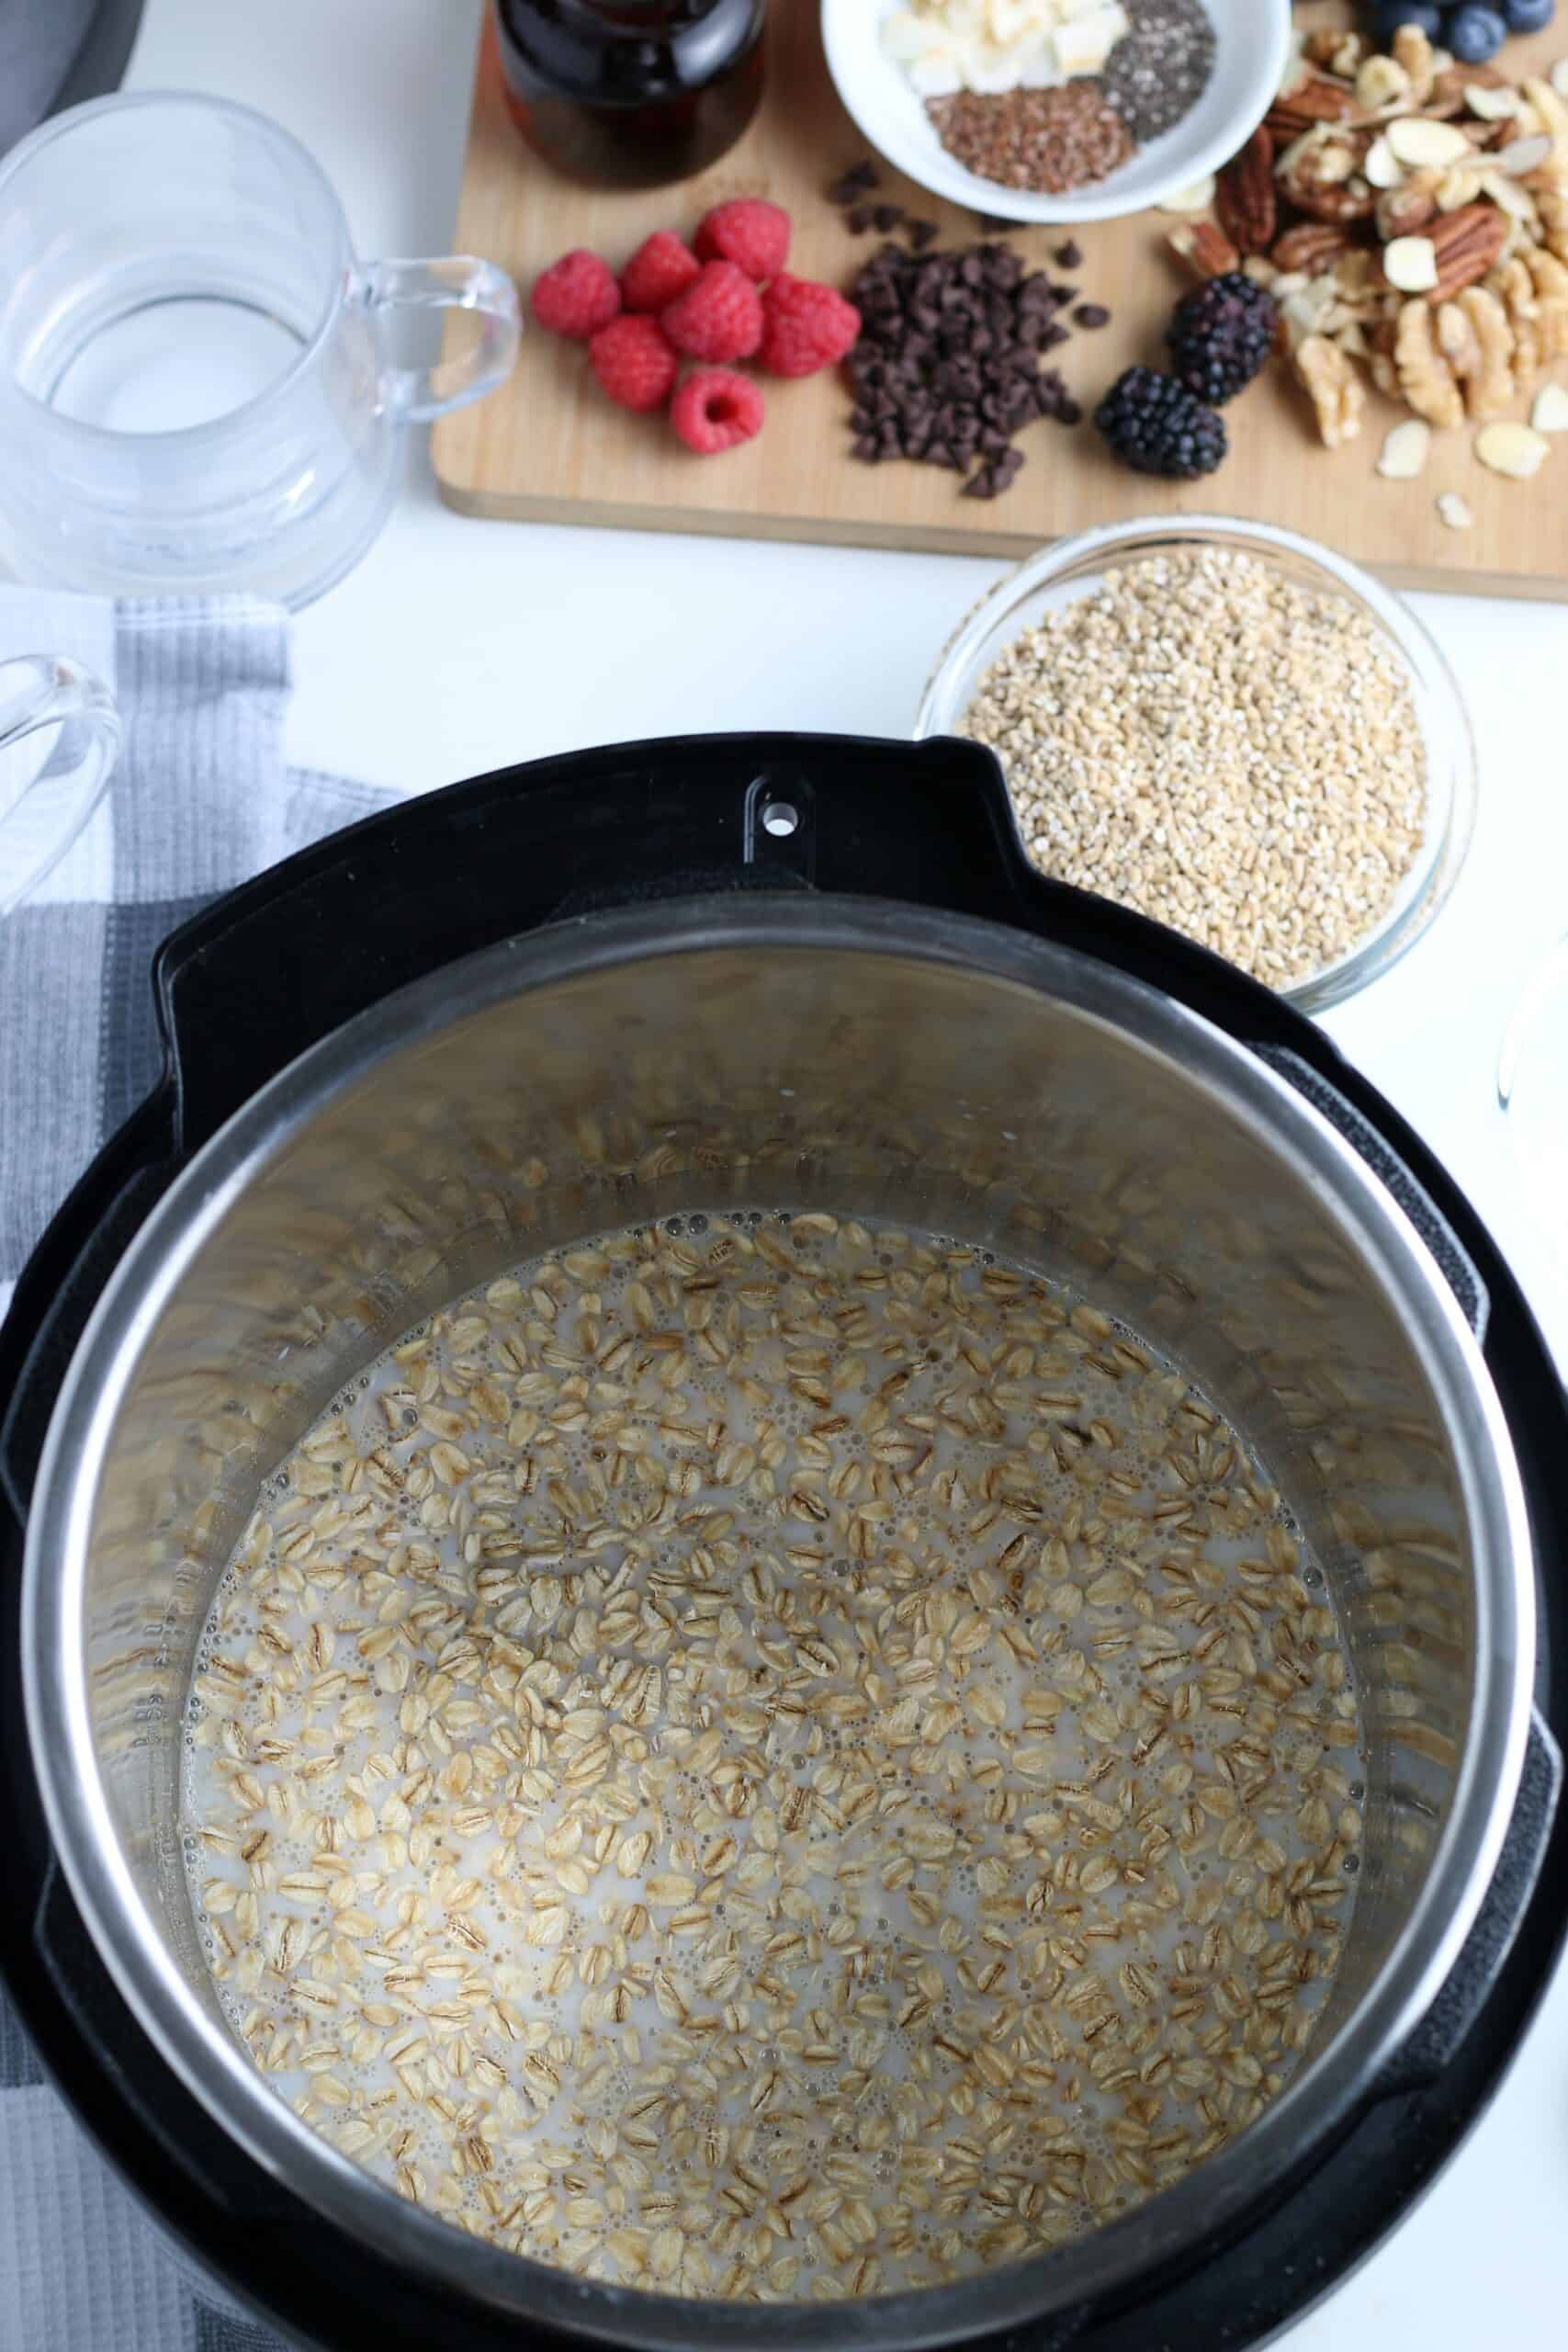 instant pot with oatmeal